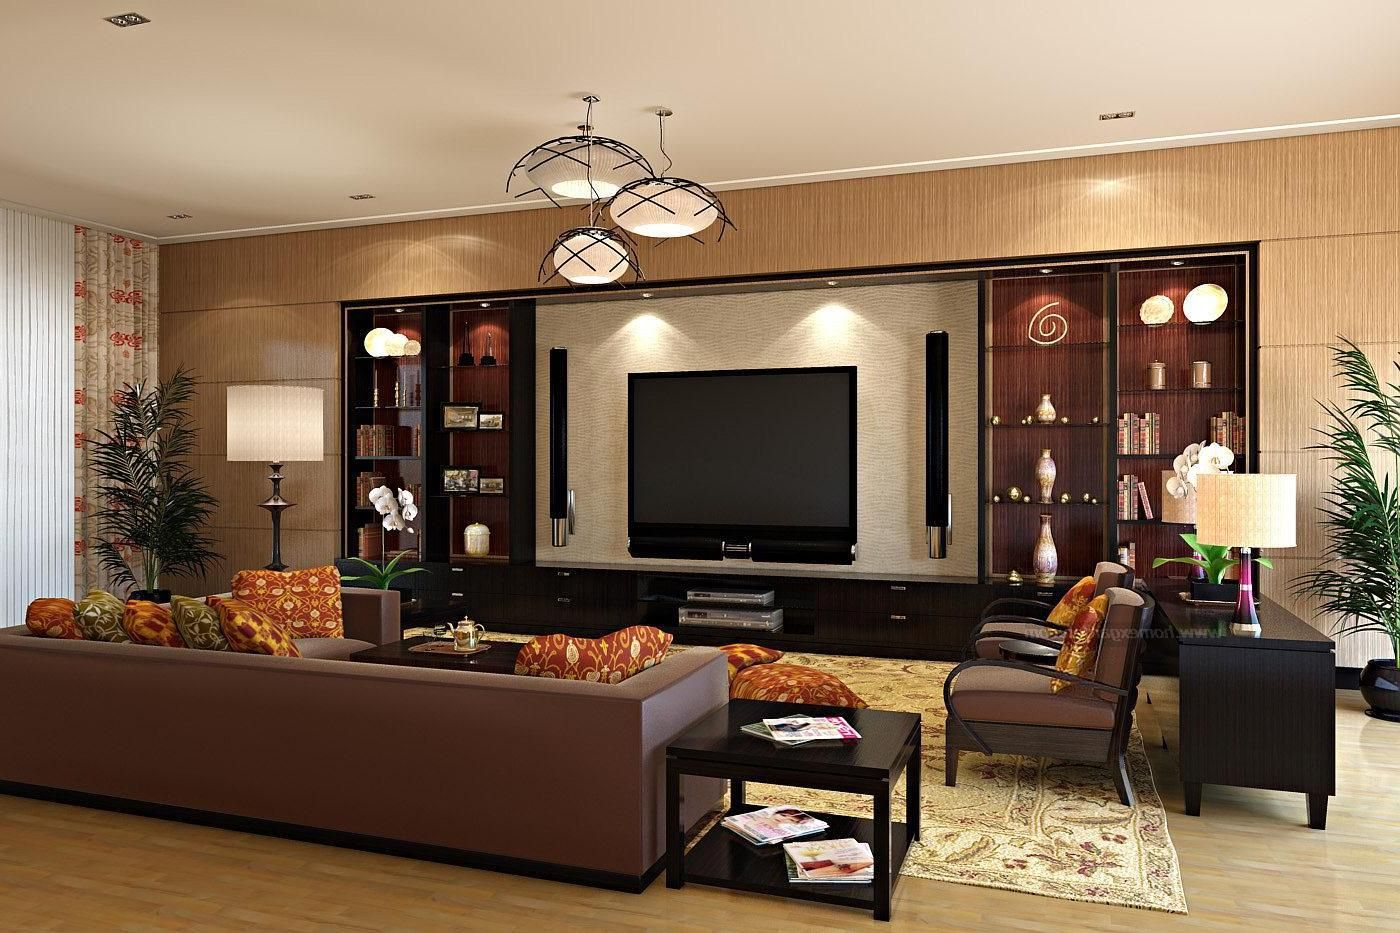 Designs Of Living Room Prepossessing House Design Styles 5 Amazing Design  Ideas For The House Inspiration Design